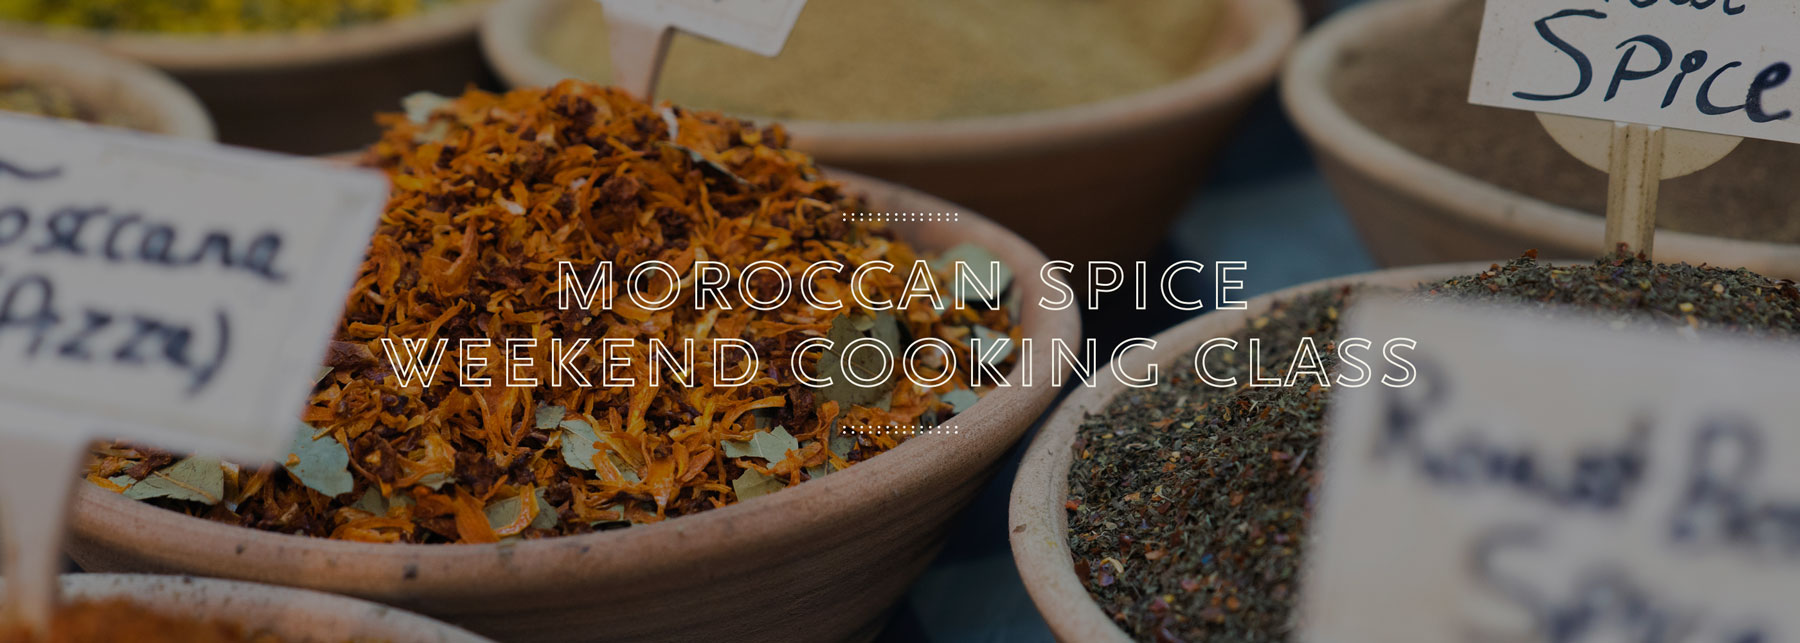 Moroccan Spice Weekend Cooking Class